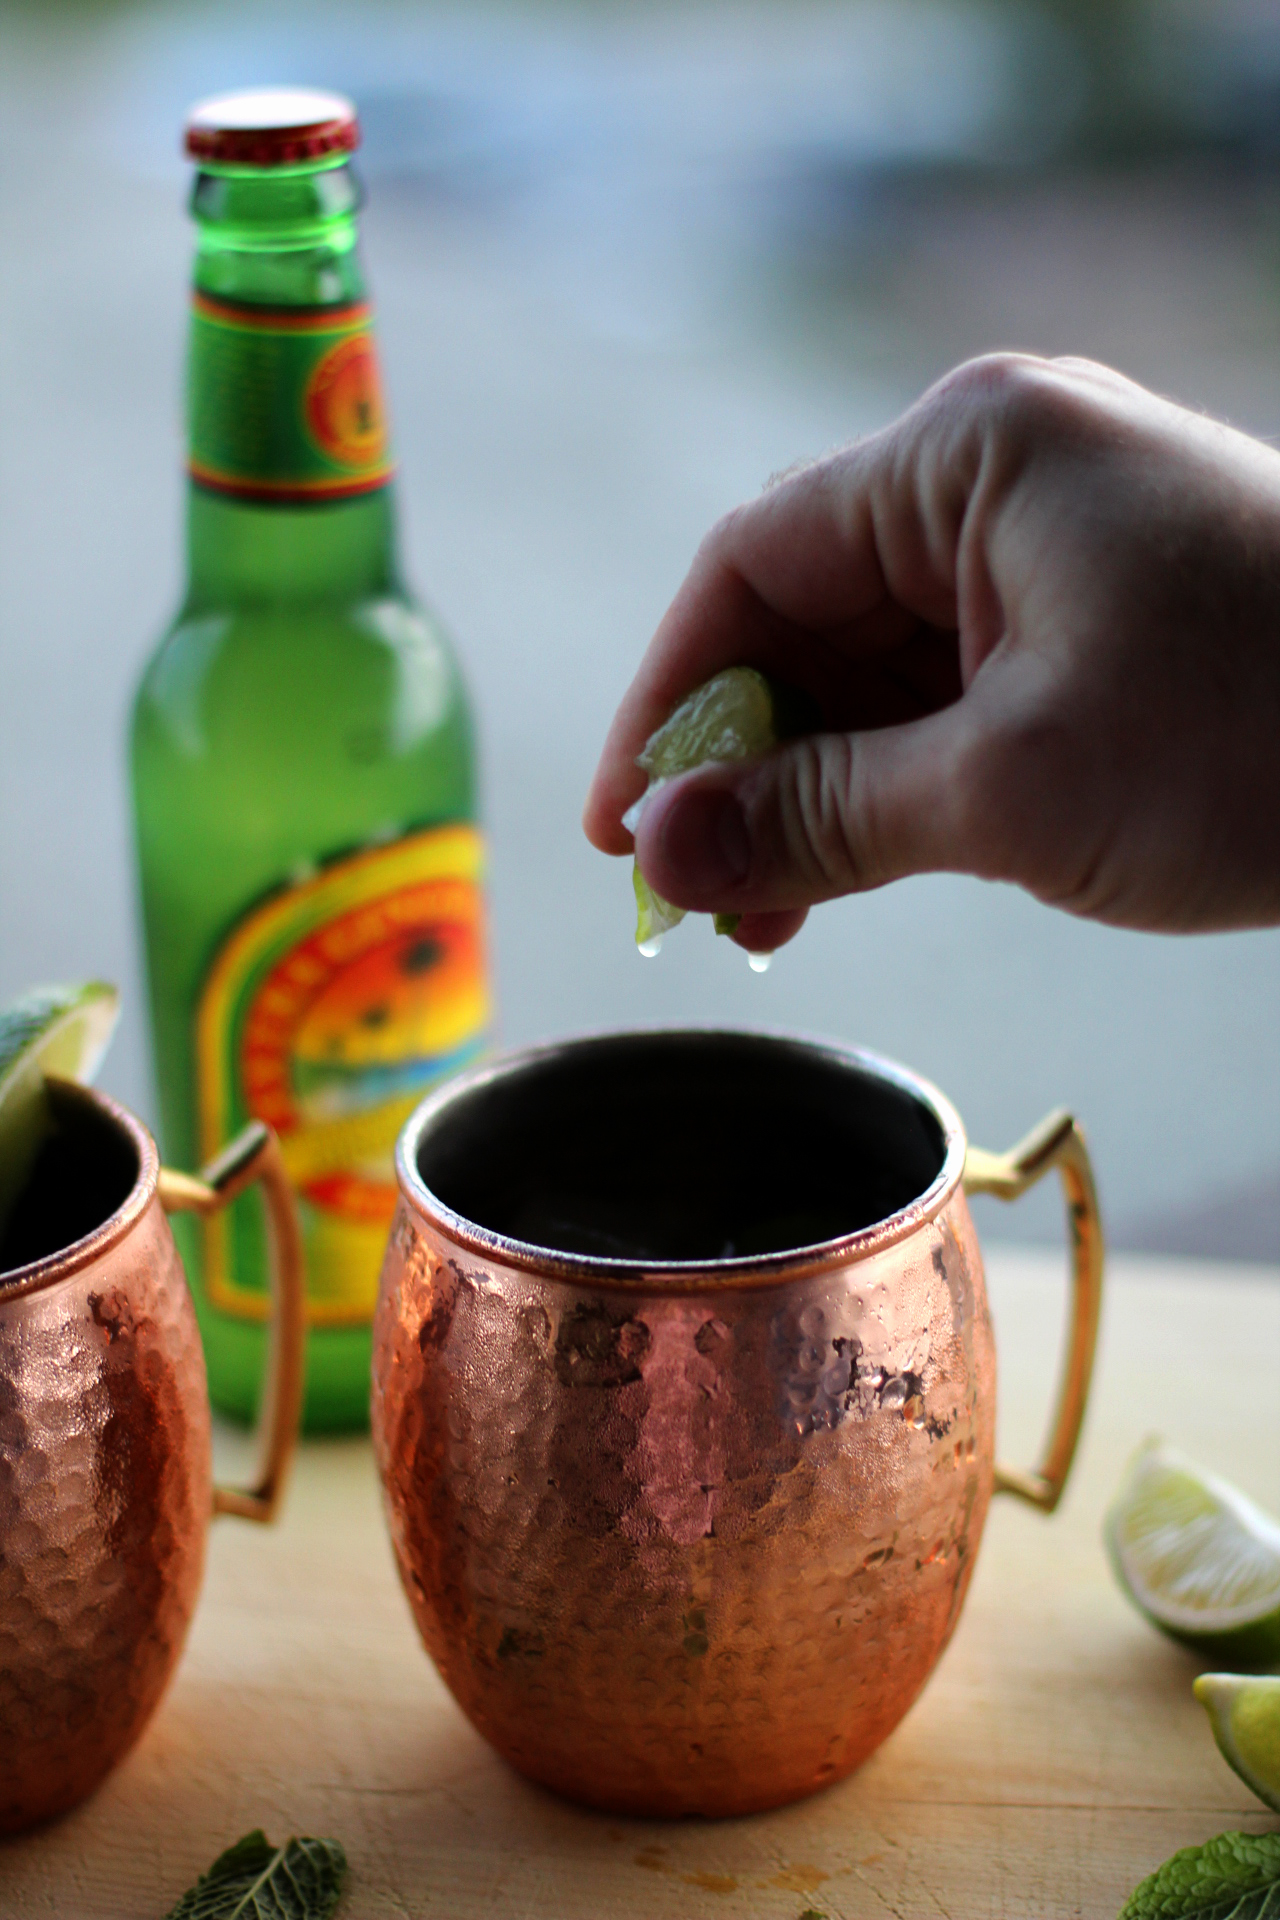 Livekerfully- Moscow Mules For Two